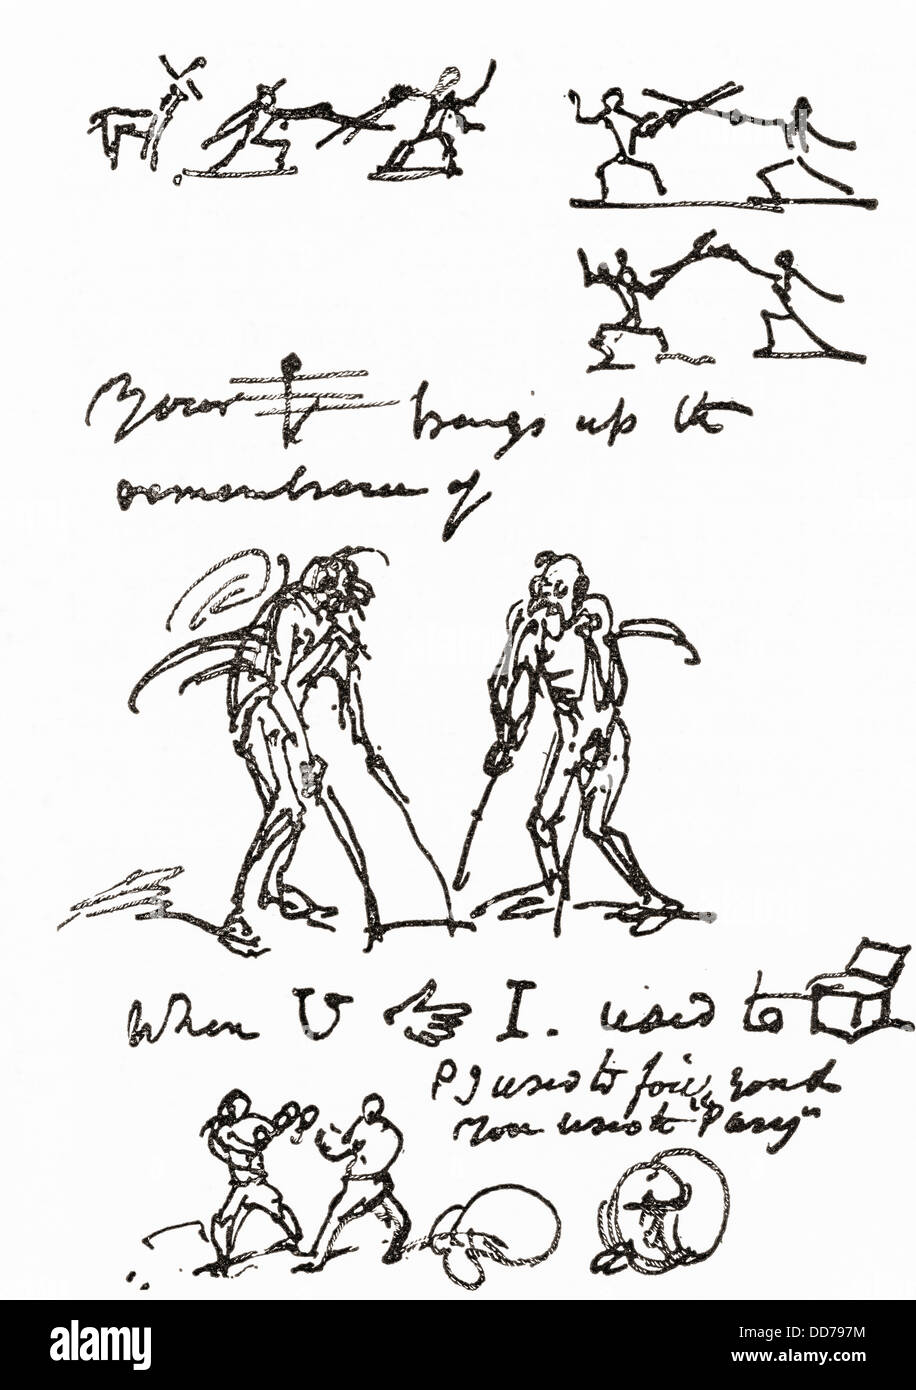 Hieroglyphic letter written by George Cruikshank to Mr. Parry. - Stock Image